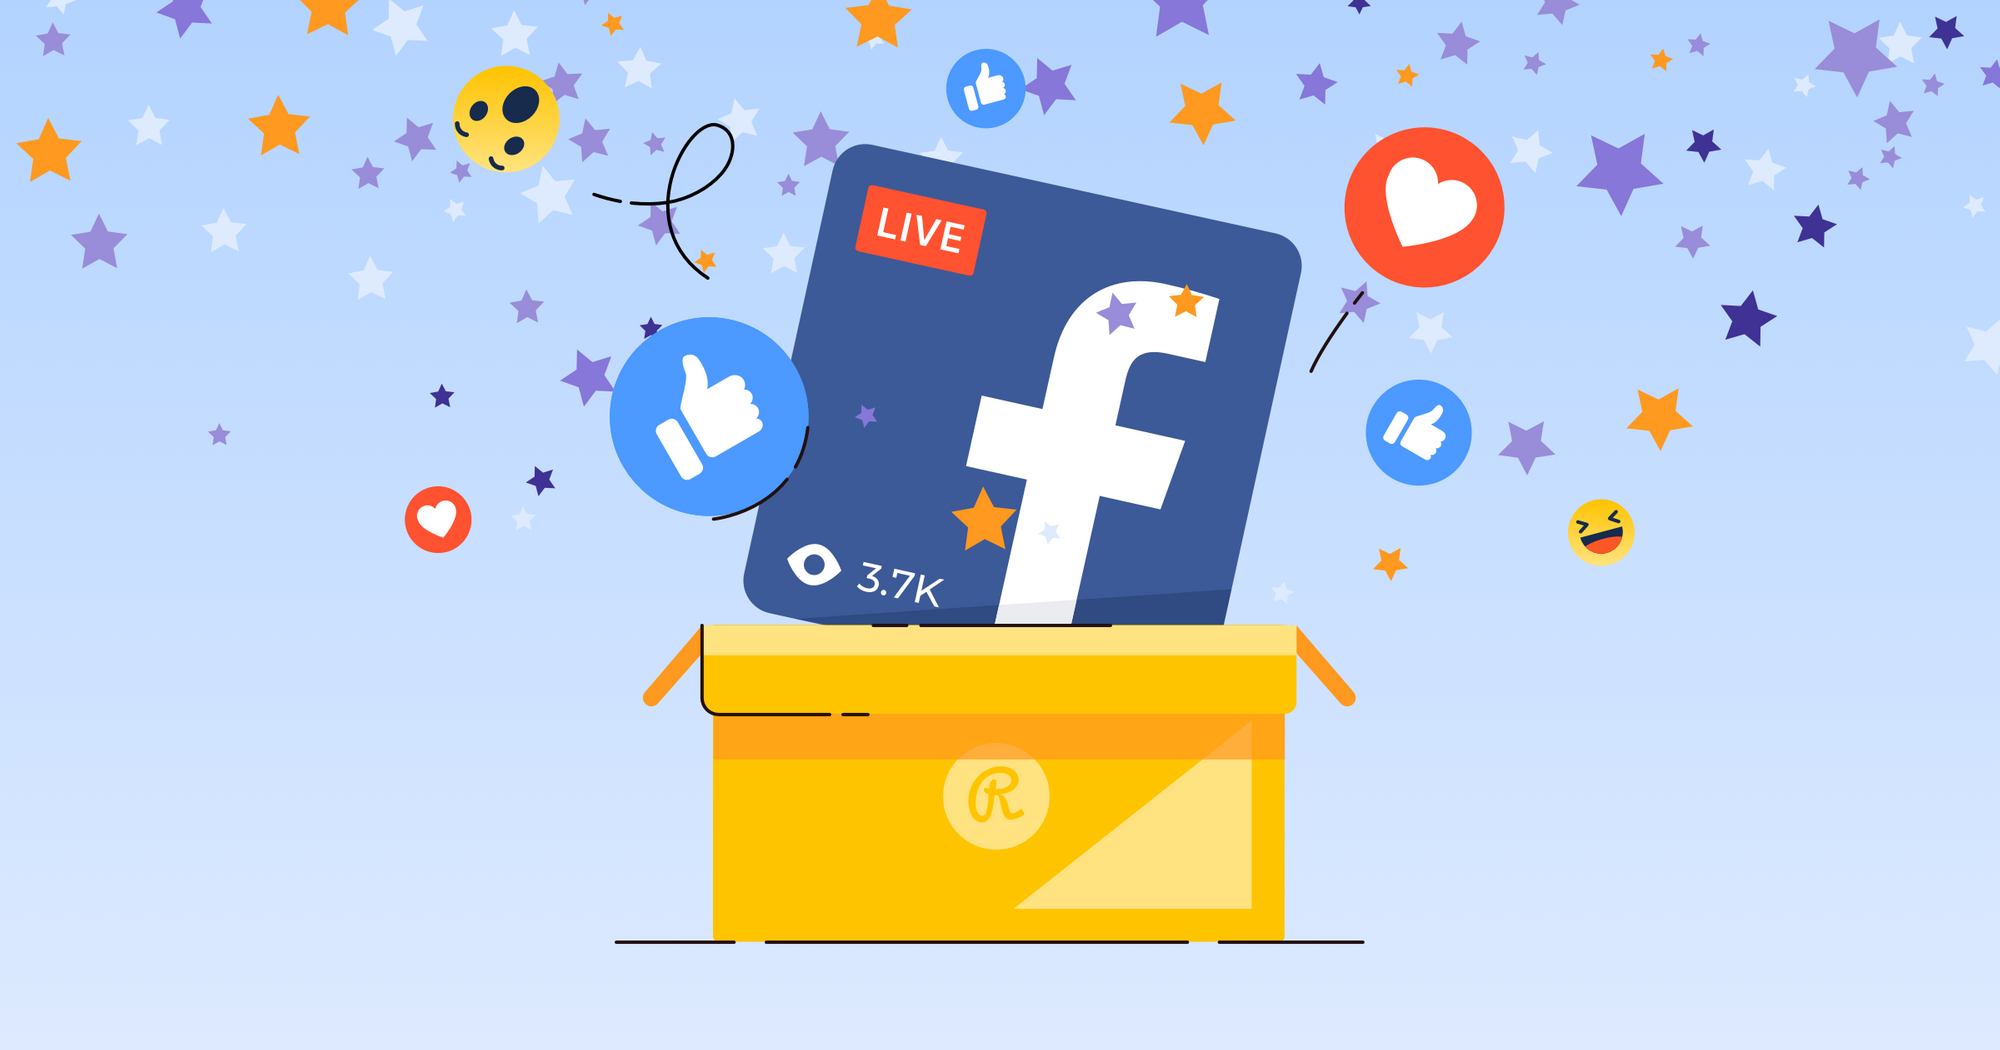 Facebook Live illustration